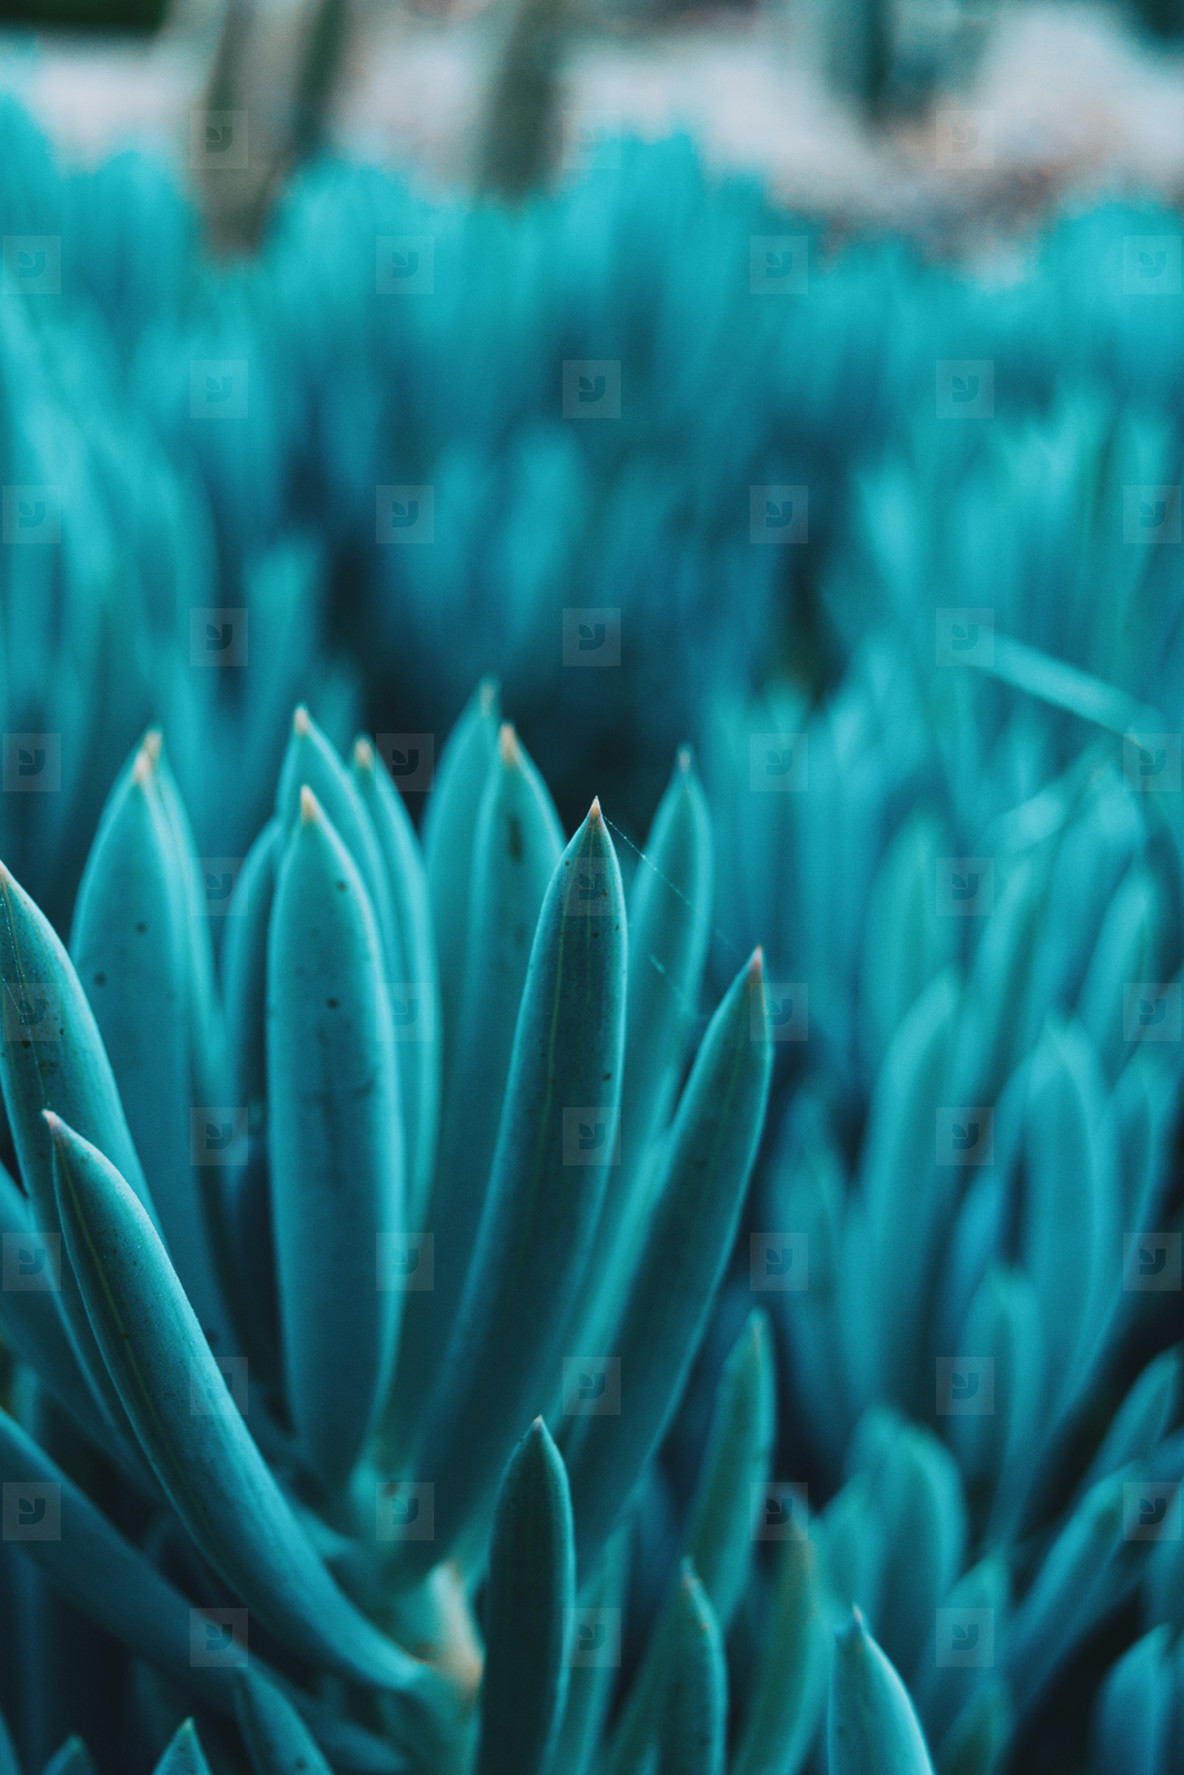 Close up of a bluish kleinia mandraliscae plant